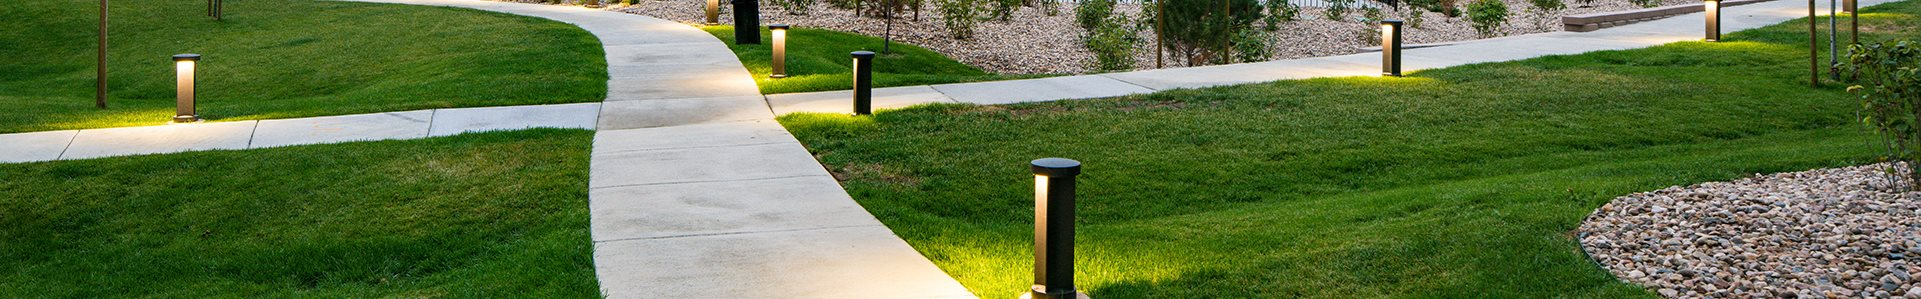 Lite Pathway Copper Lane Apartment Rentals | Vancouver, WA